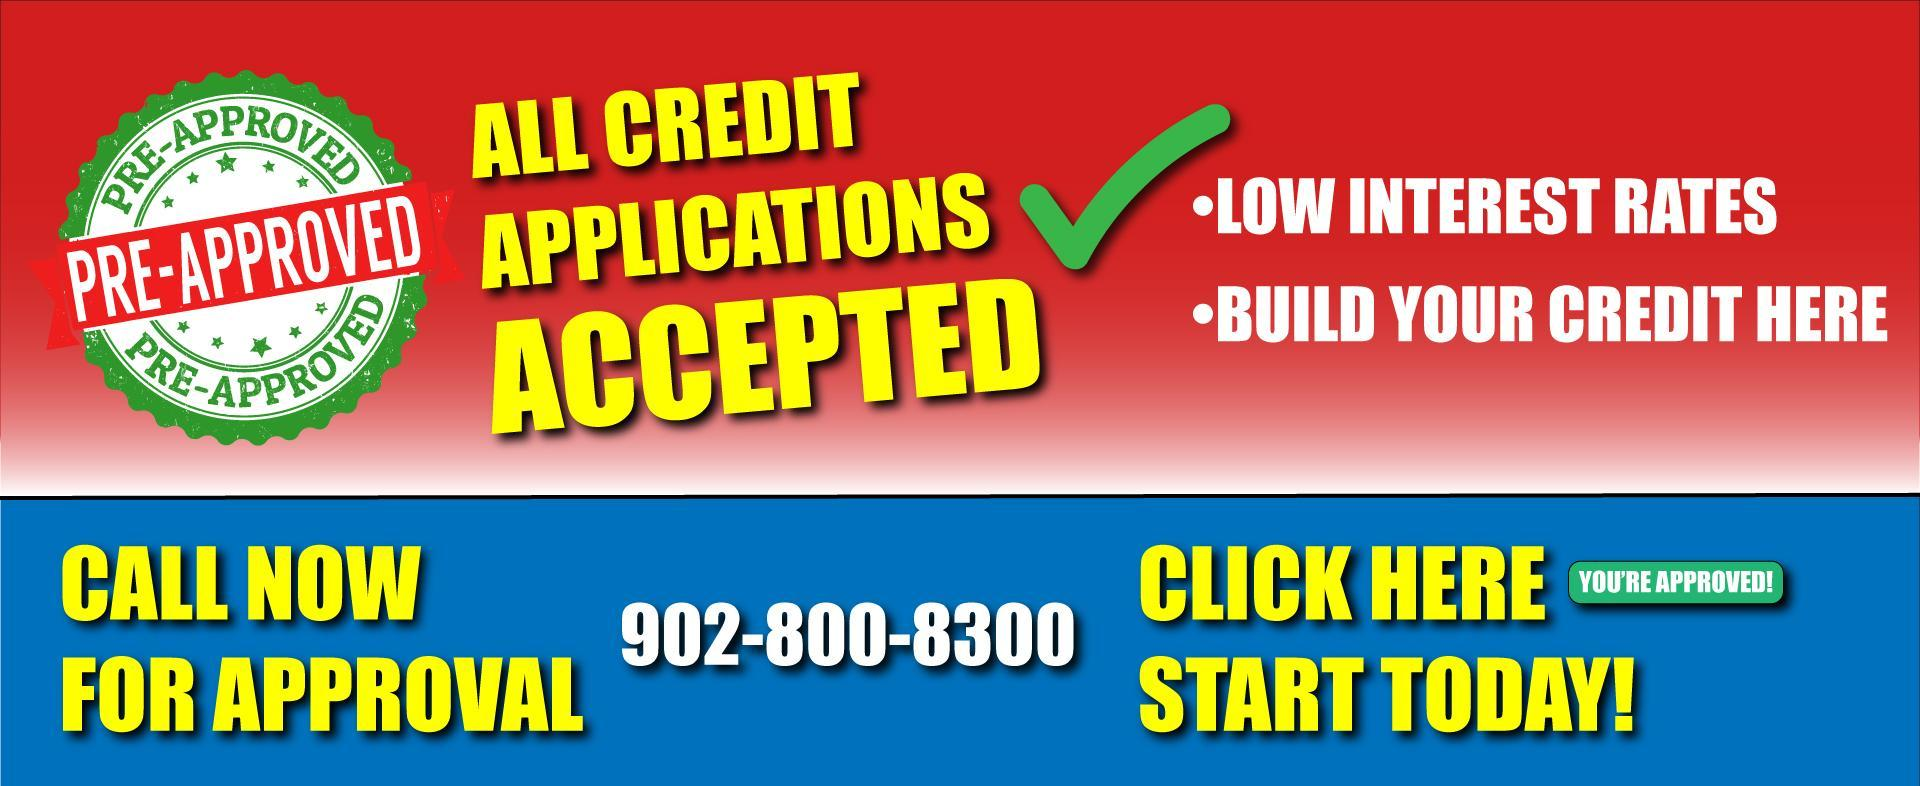 Credit Approval Steele Ford